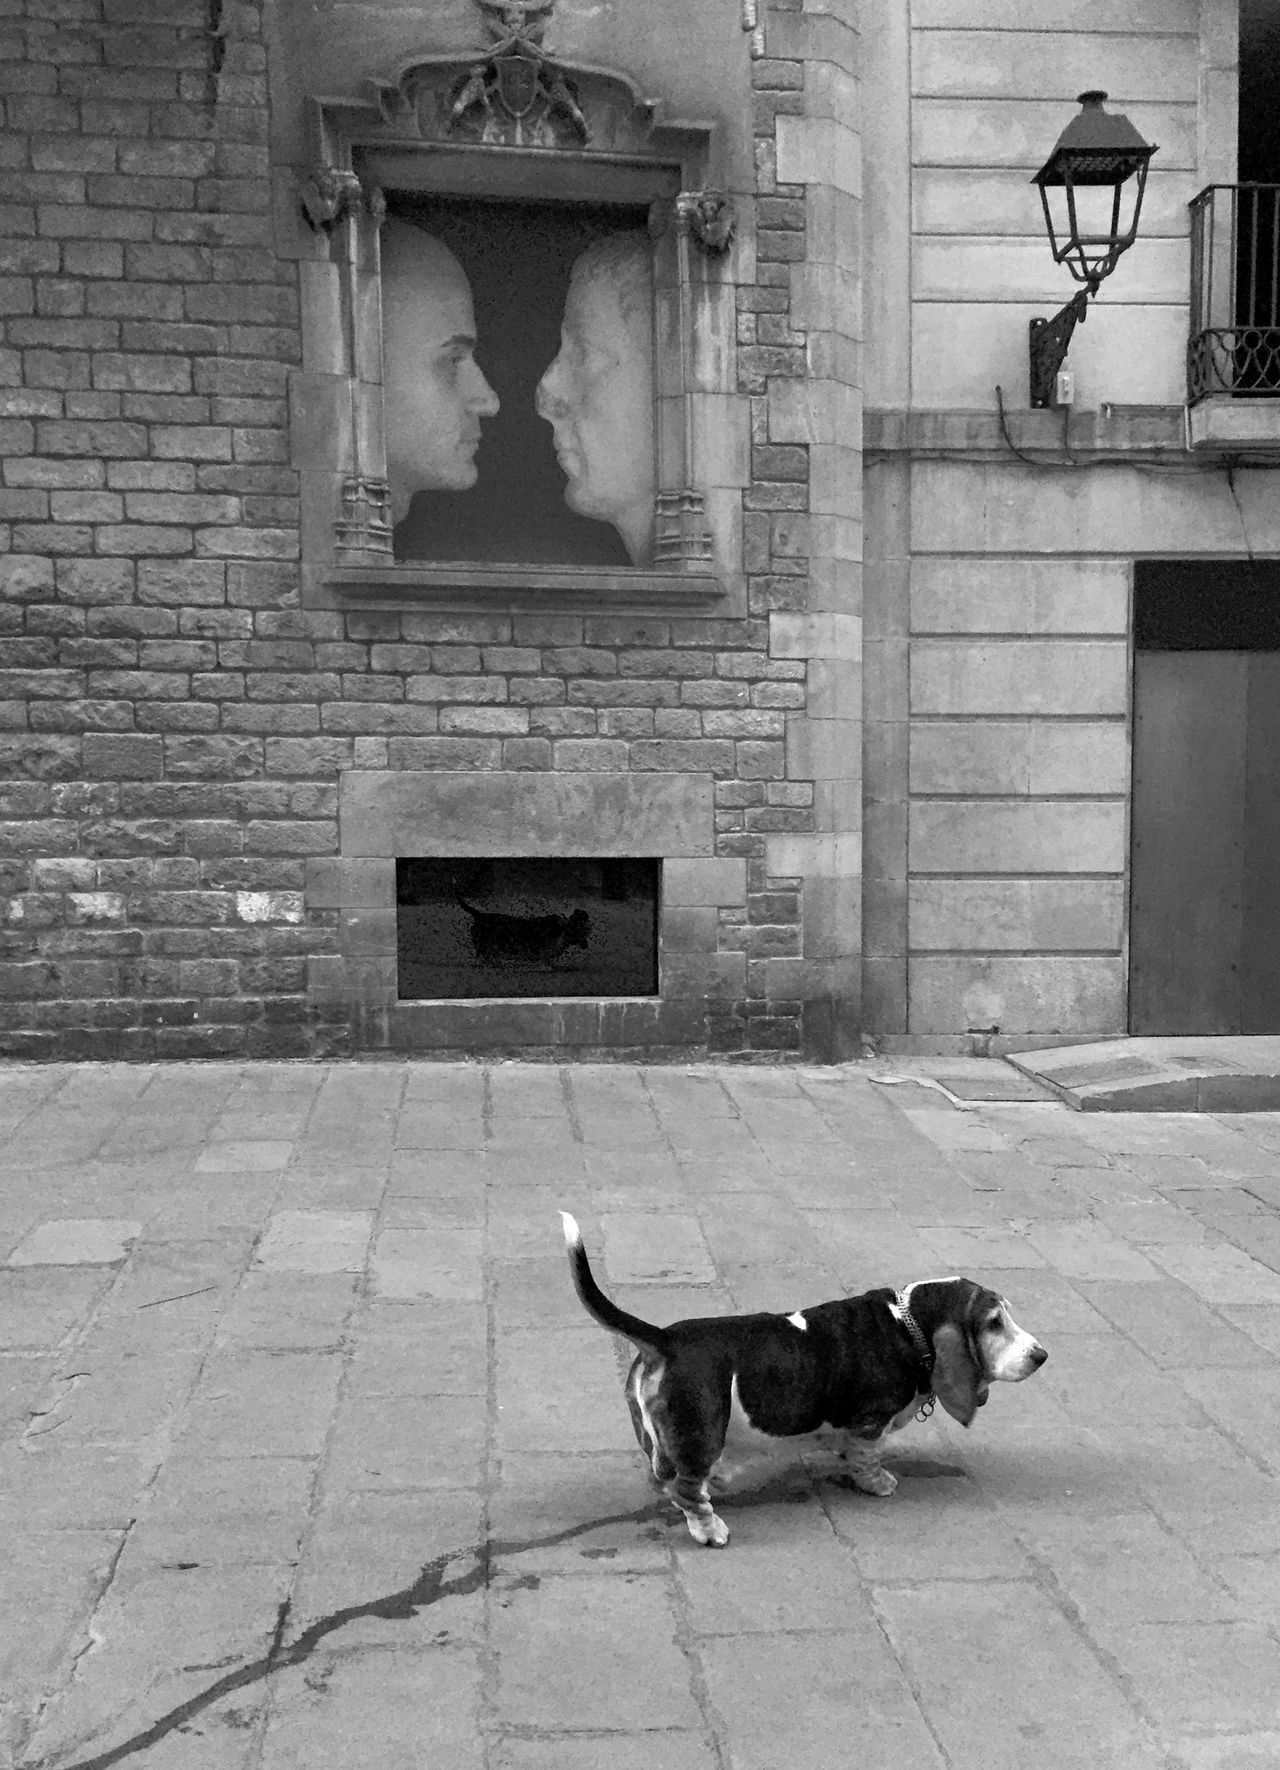 196 / 366 Animal Themes Architecture Building Exterior Candid Photography Dog Domestic Animals One Animal Pets Reflection Sidewalk Street Urinate Urinating Urinating In Public Wall - Building Feature Black&white Black & White Black And White